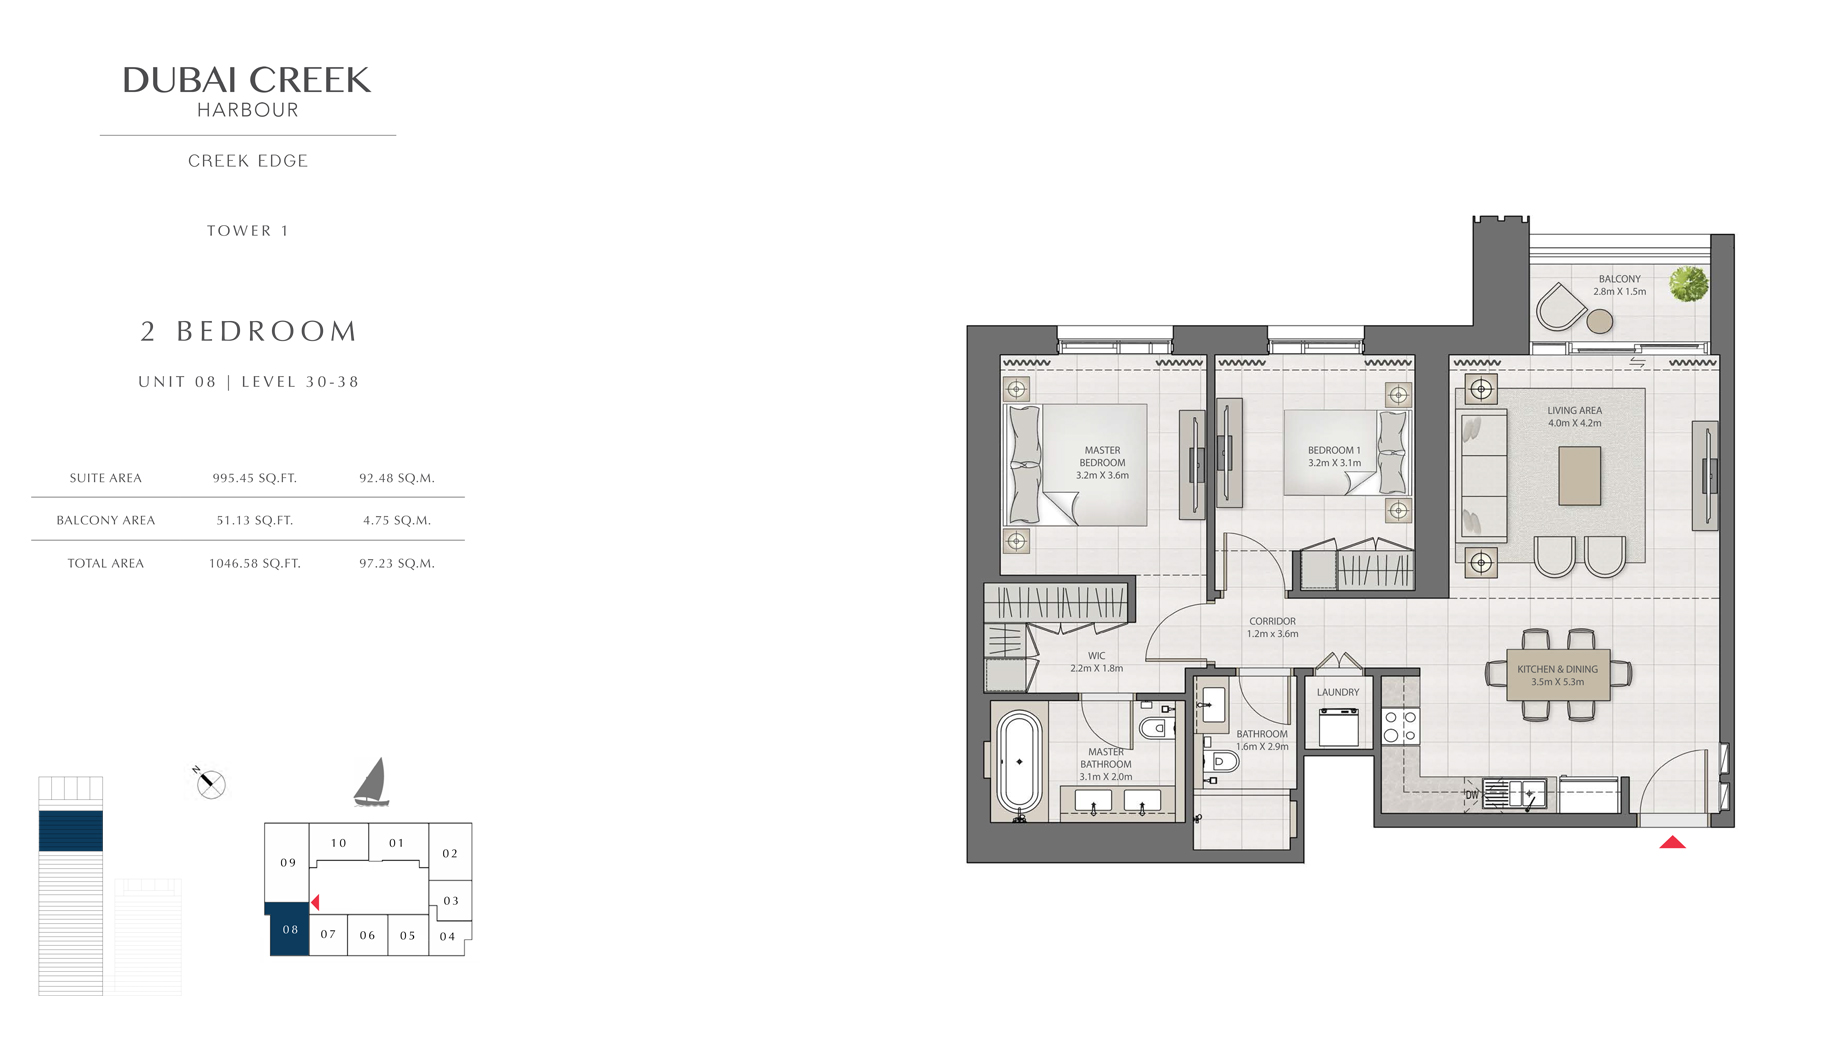 2 Bedroom Tower 1 Unit 08 Level 30-38 Size 1046 sq.ft